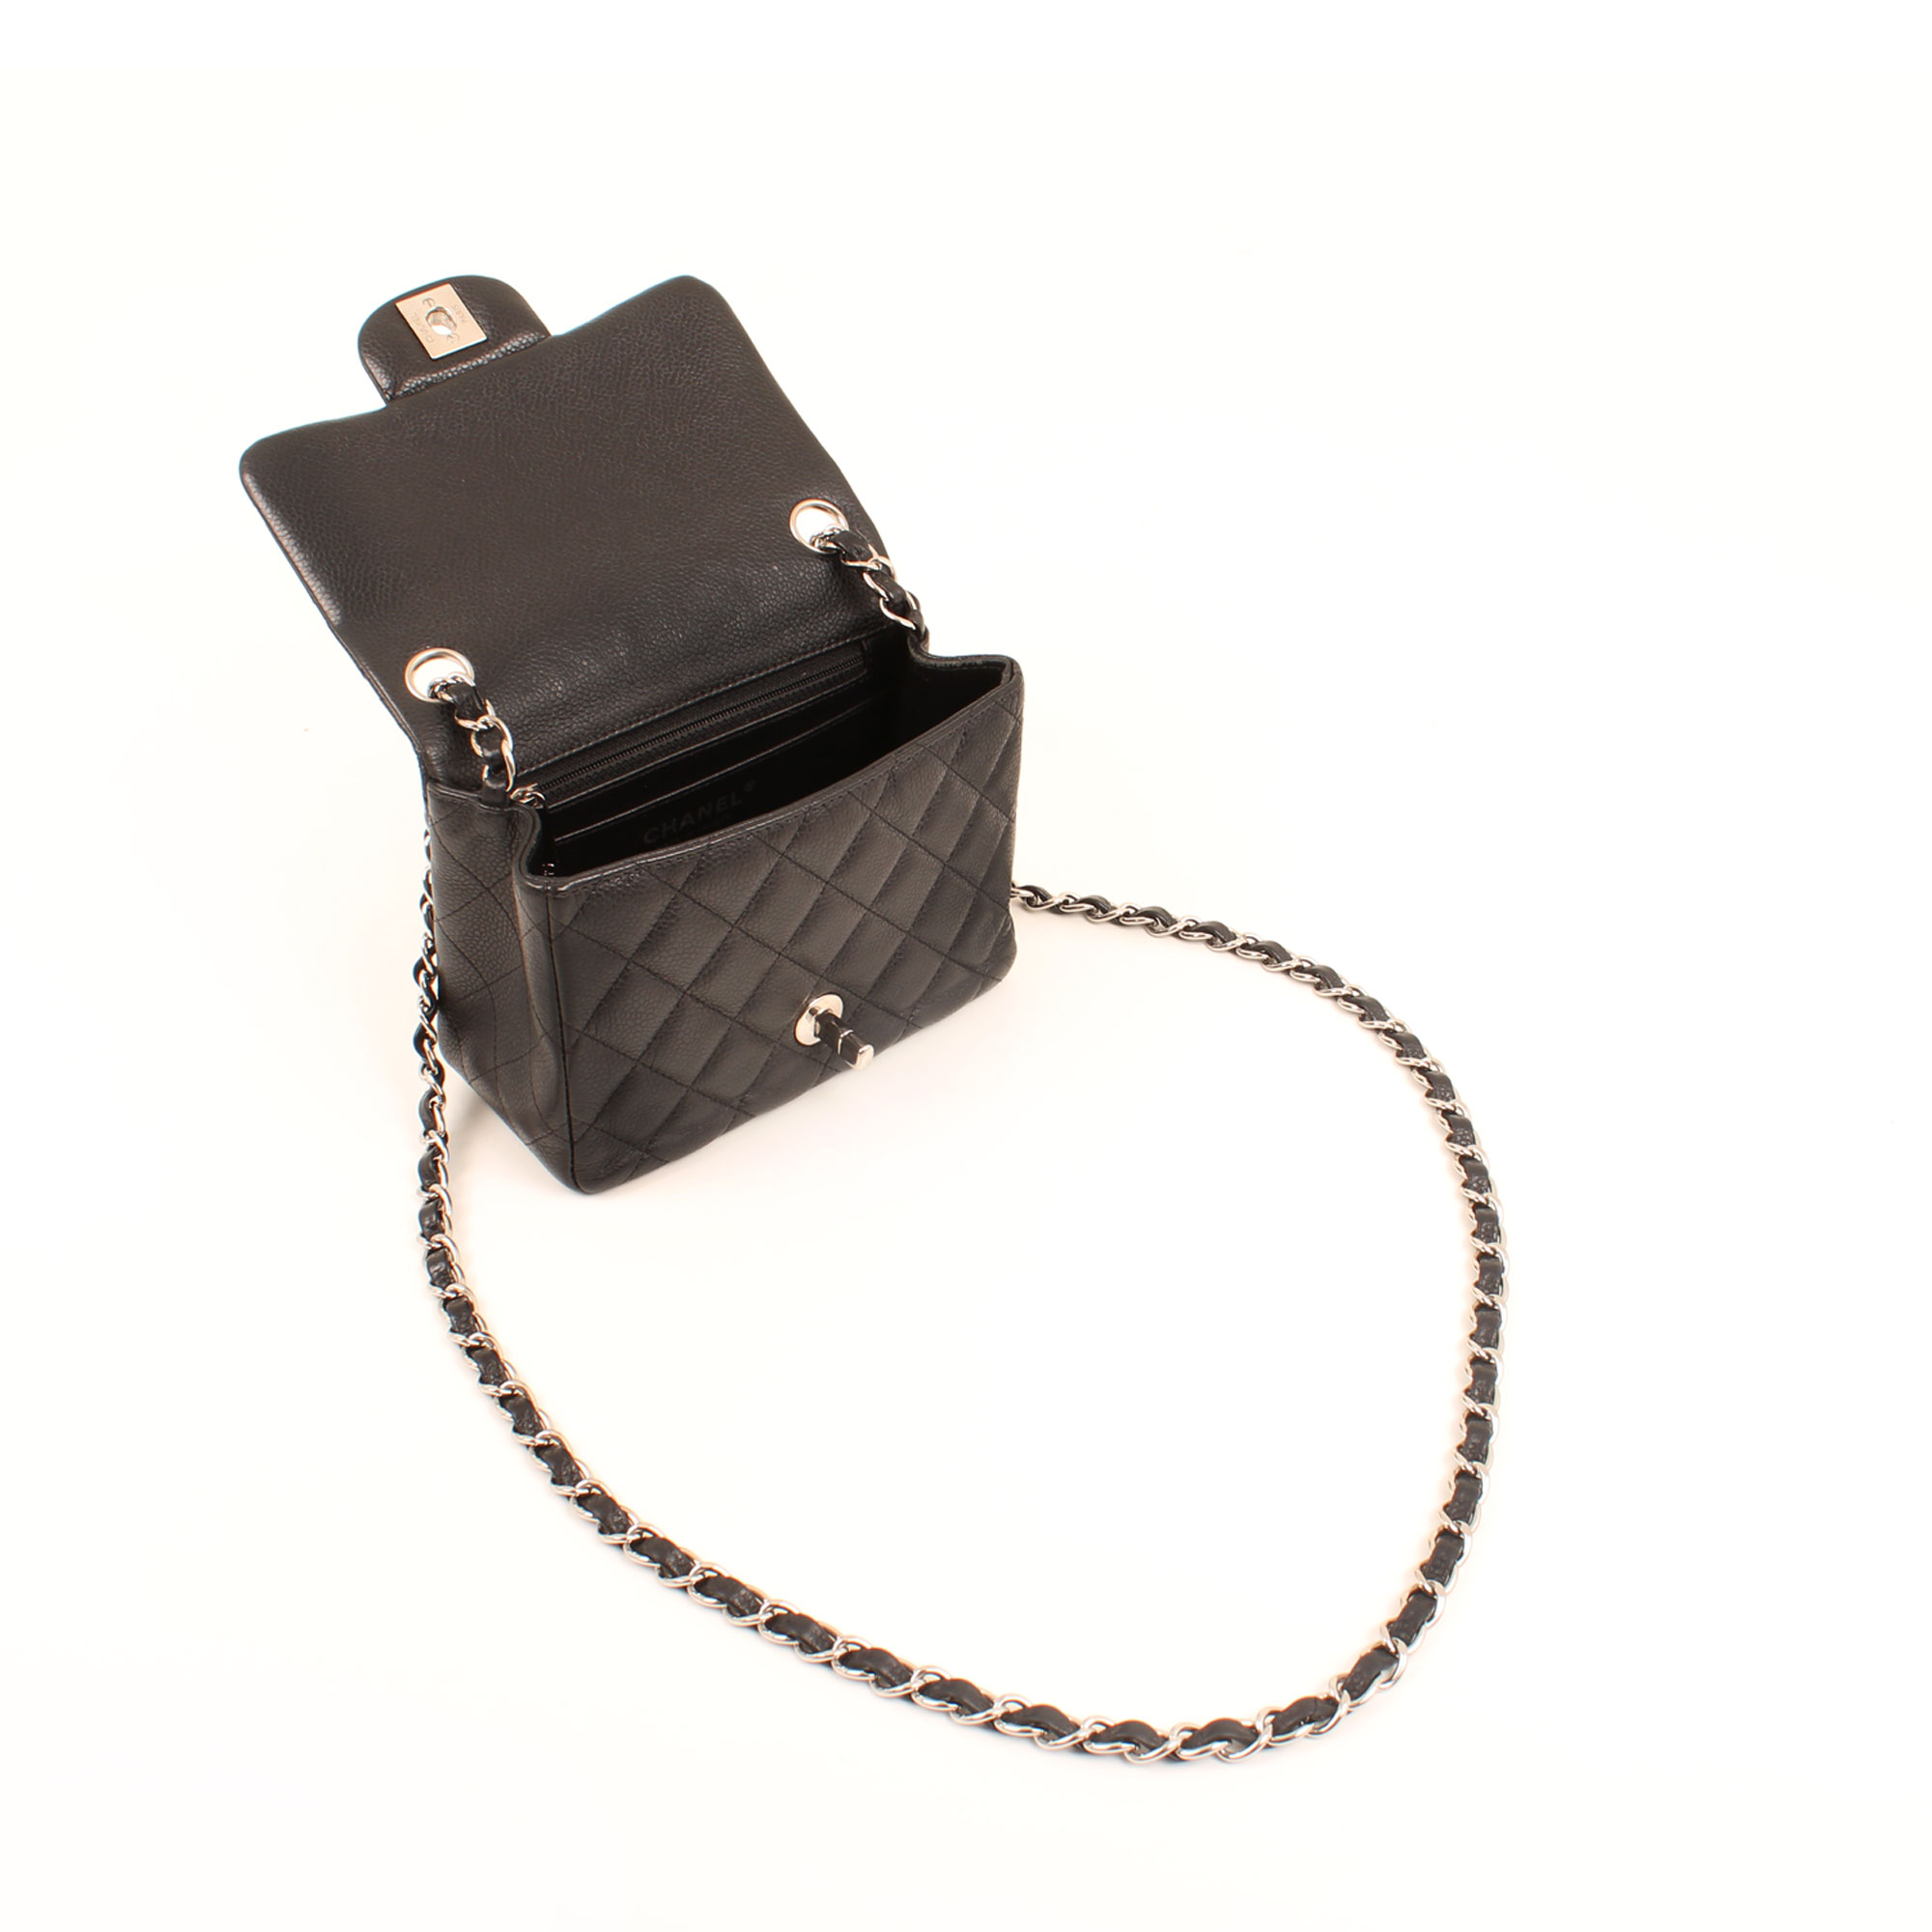 Inner part image of chanel mini timeless black caviar leather